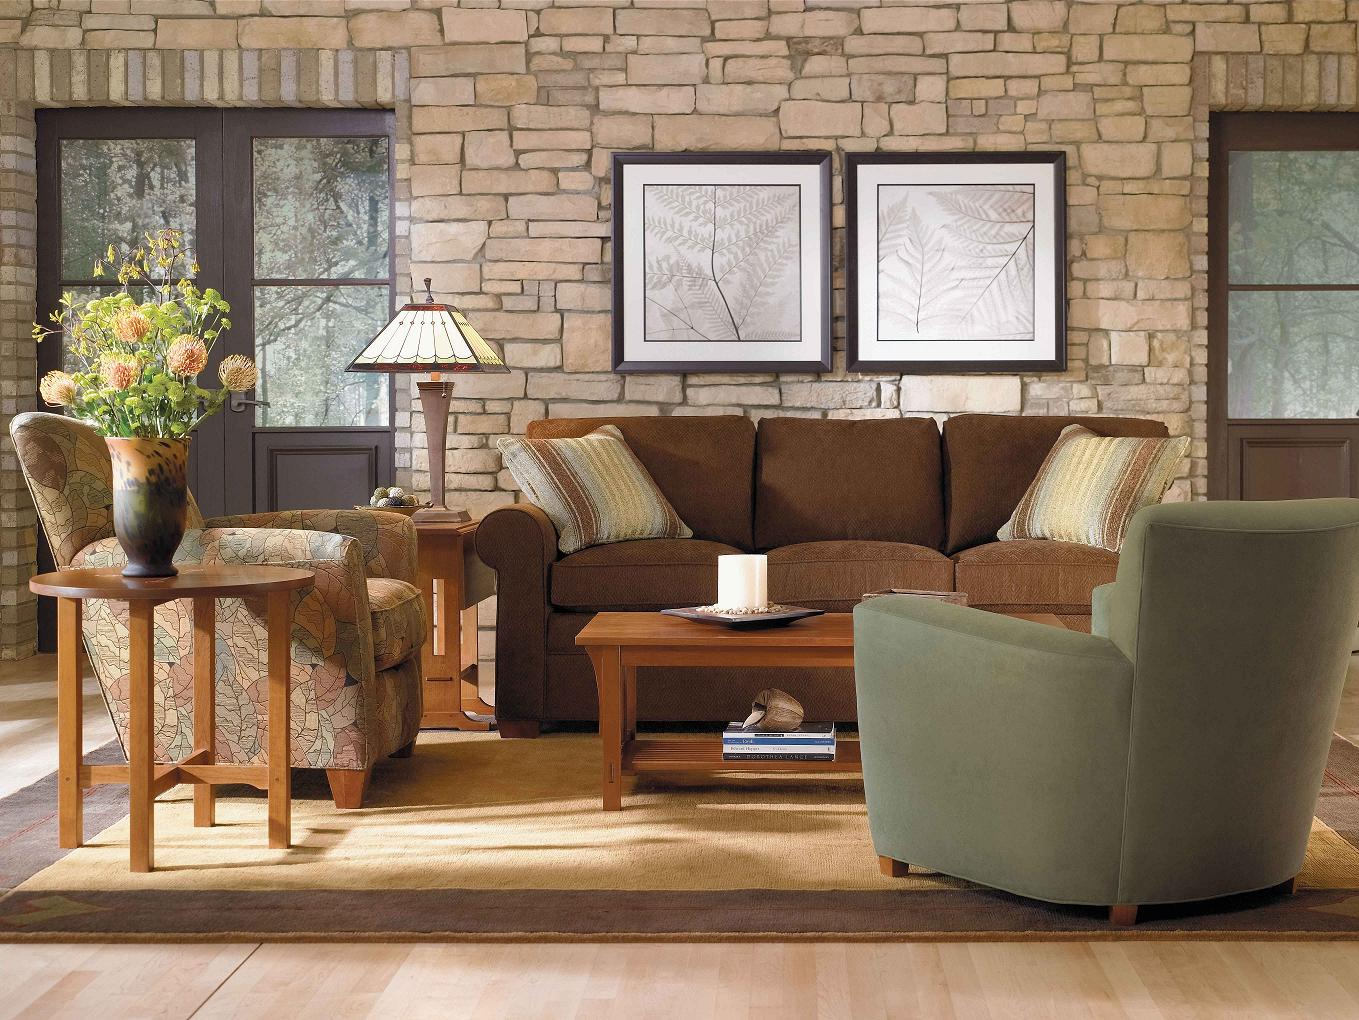 Presidents Day Furniture Sale At Flegel S Features Deep